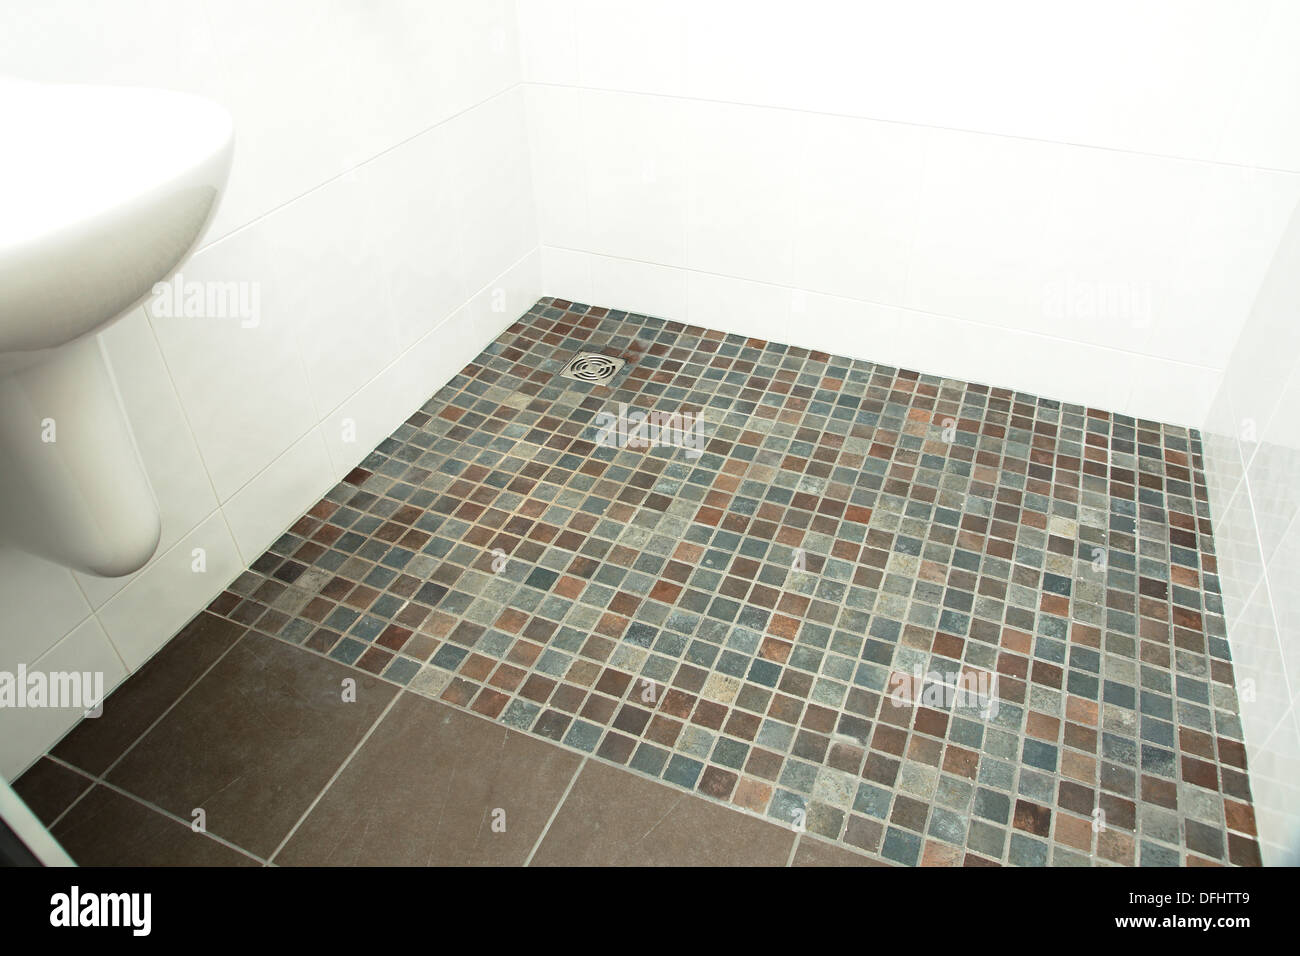 A Specially Adapted Wet Room Shower Bathroom With Non Slip Tiles Stock Phot